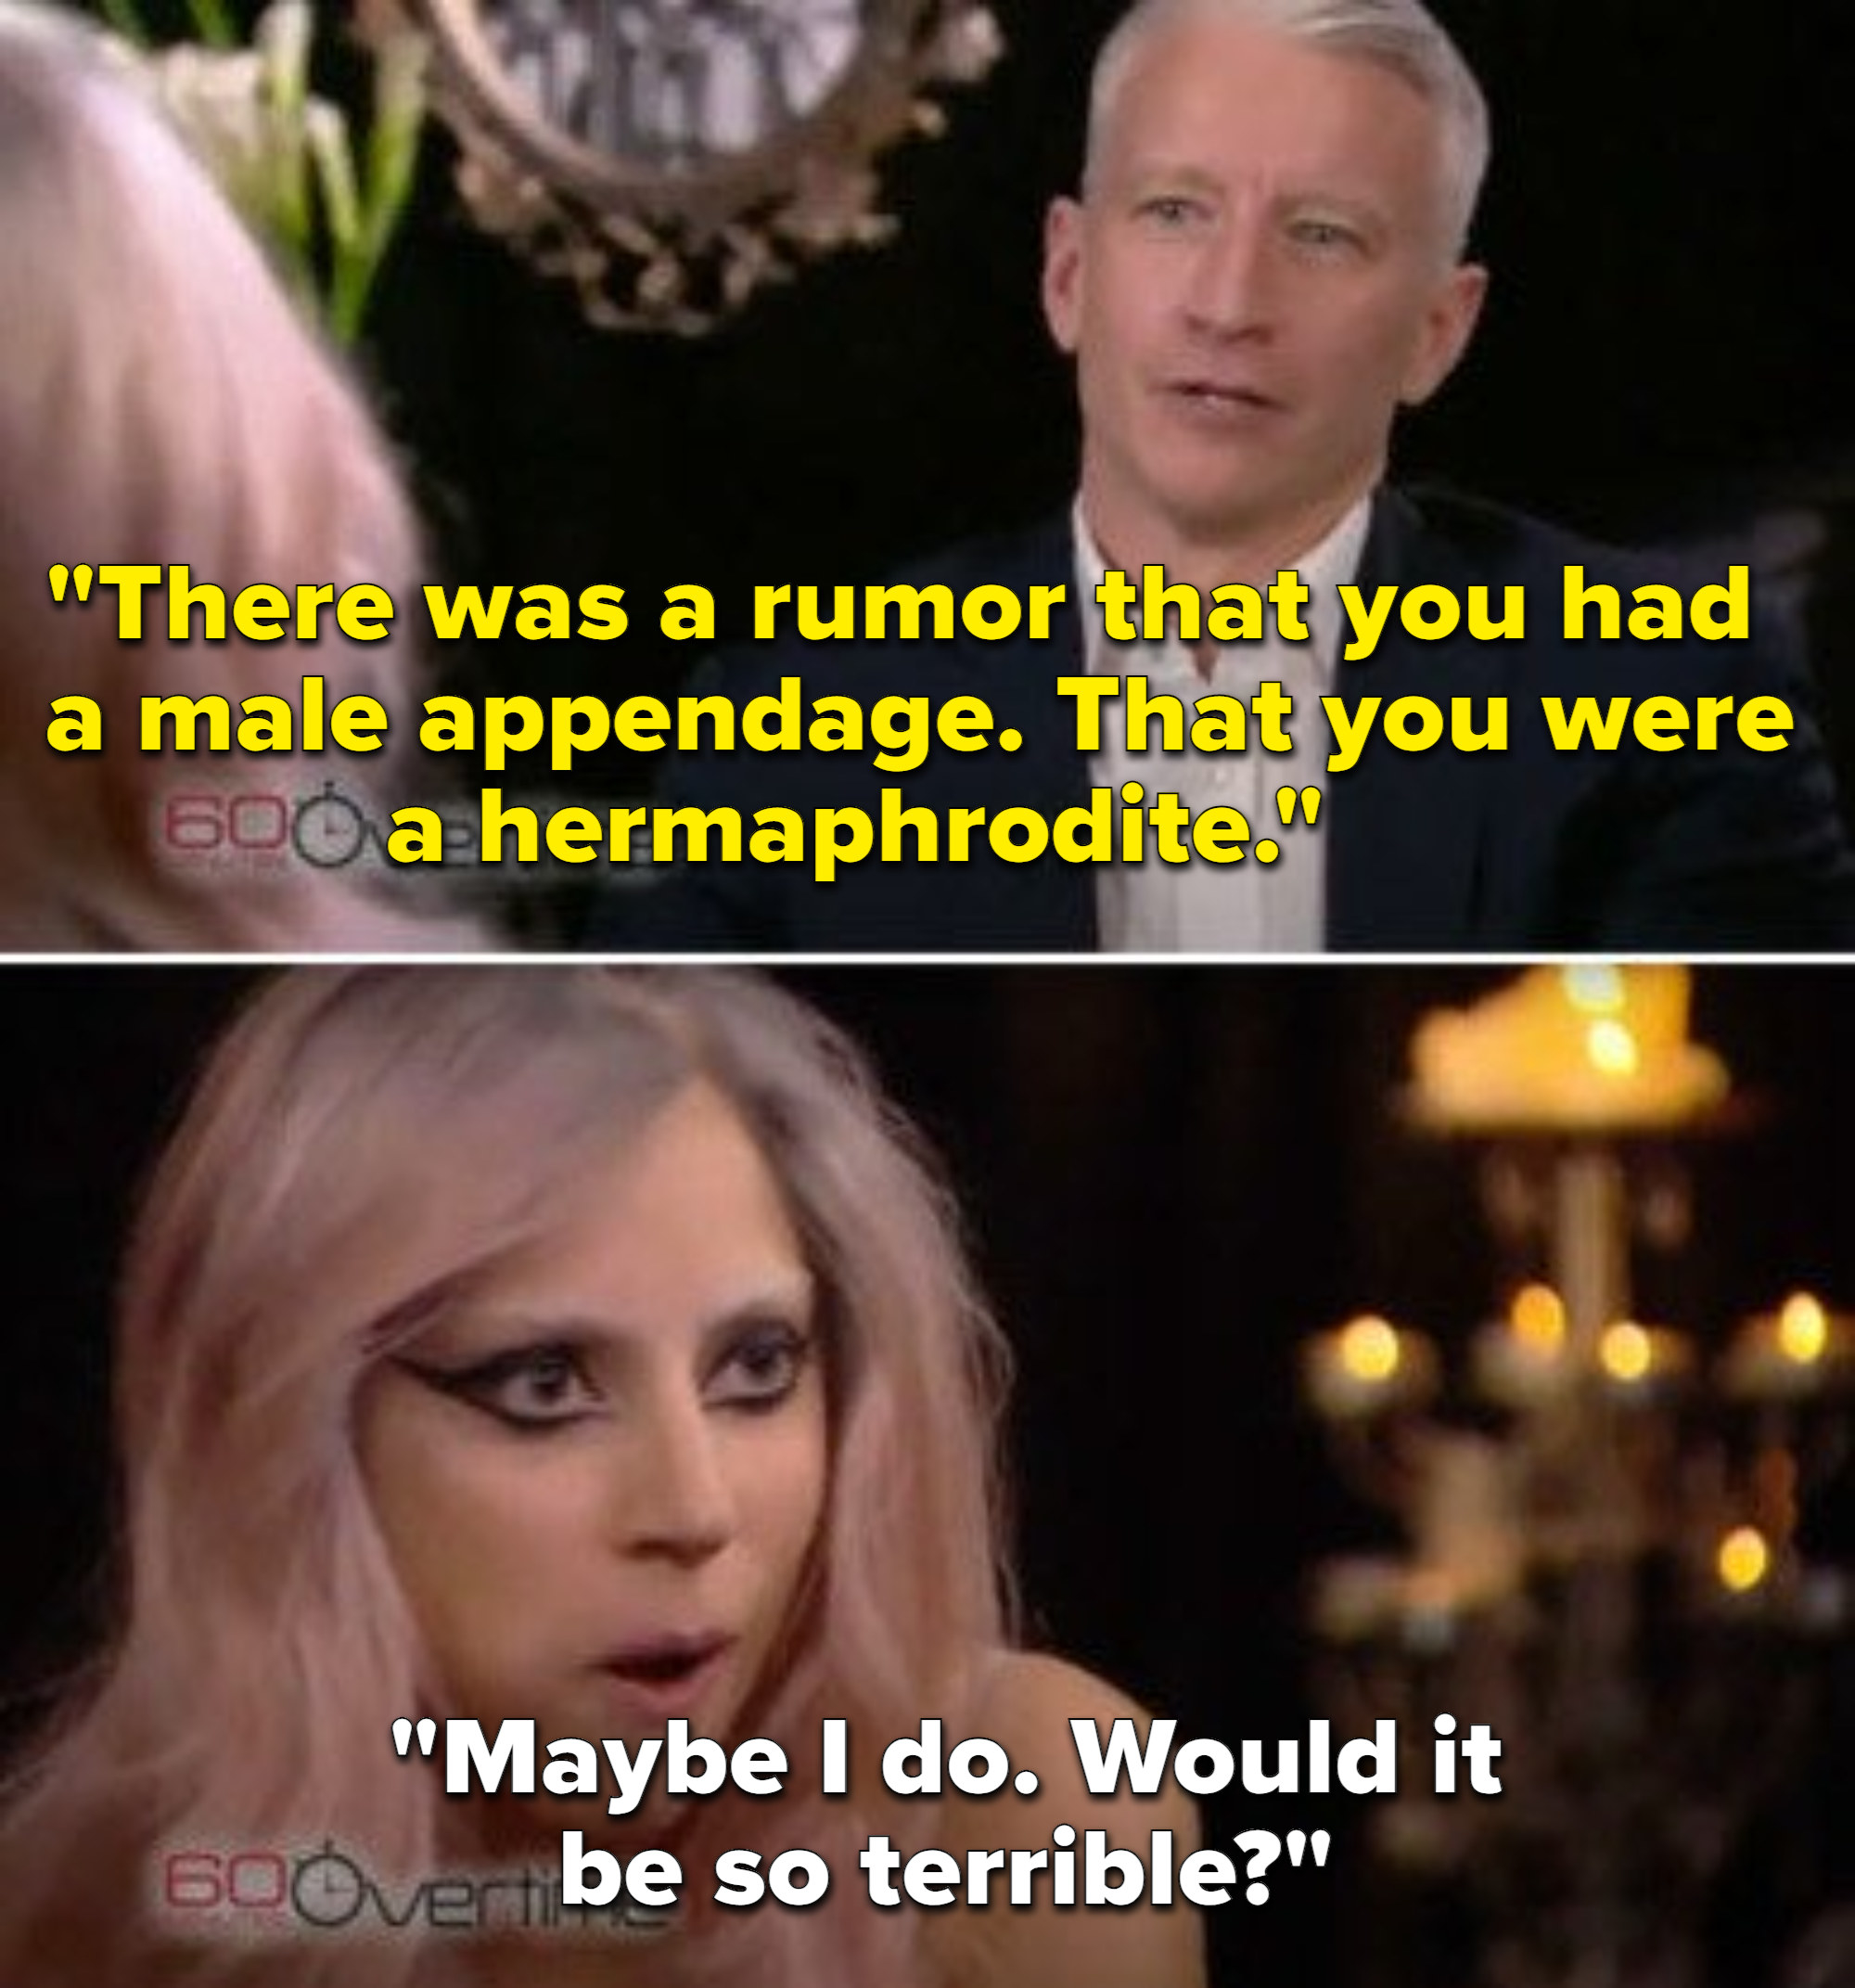 Anderson Cooper bringing up rumors about Lady Gaga having a penis